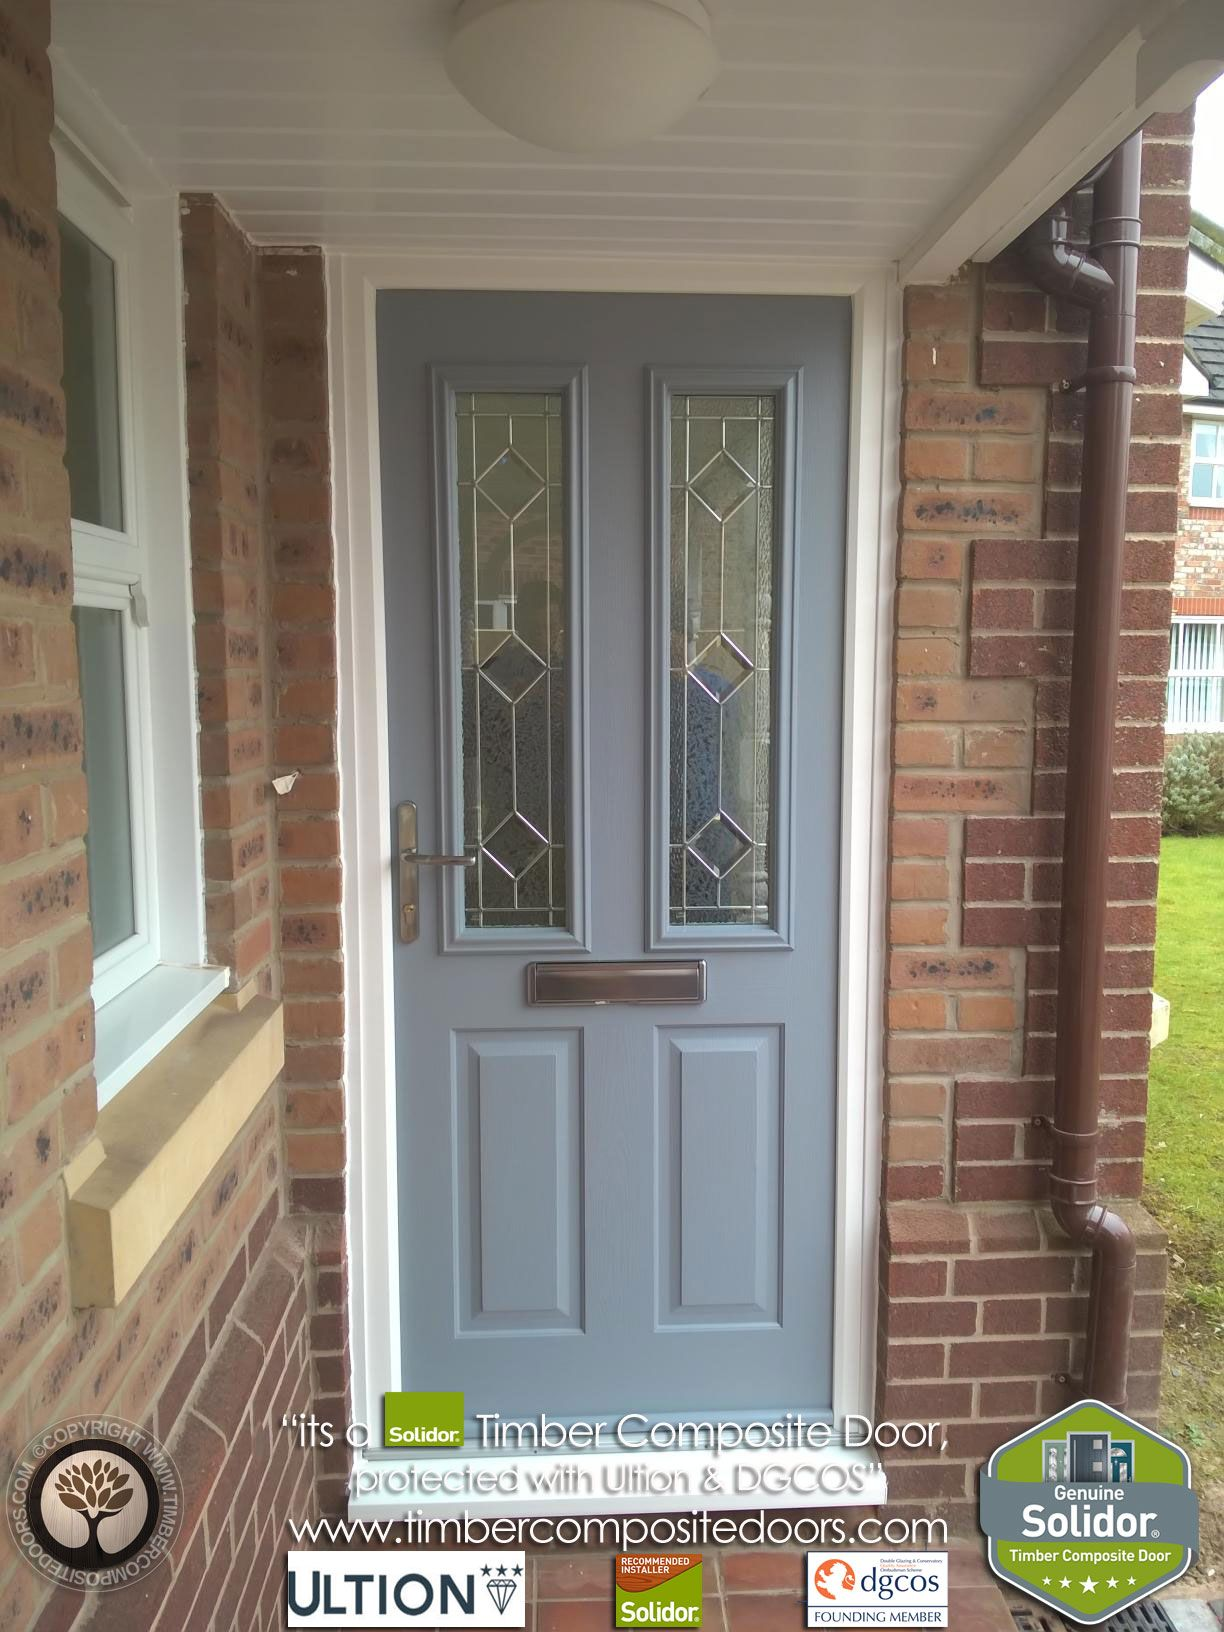 Every Solidor Timber Composite Door comes fitted as standard with Ultion 3 Star Diamond Sold Secure Locks fully fitted with 12 months Credit & Solidor Ultion Timber Composite Doors 12 Months Interest Free ...